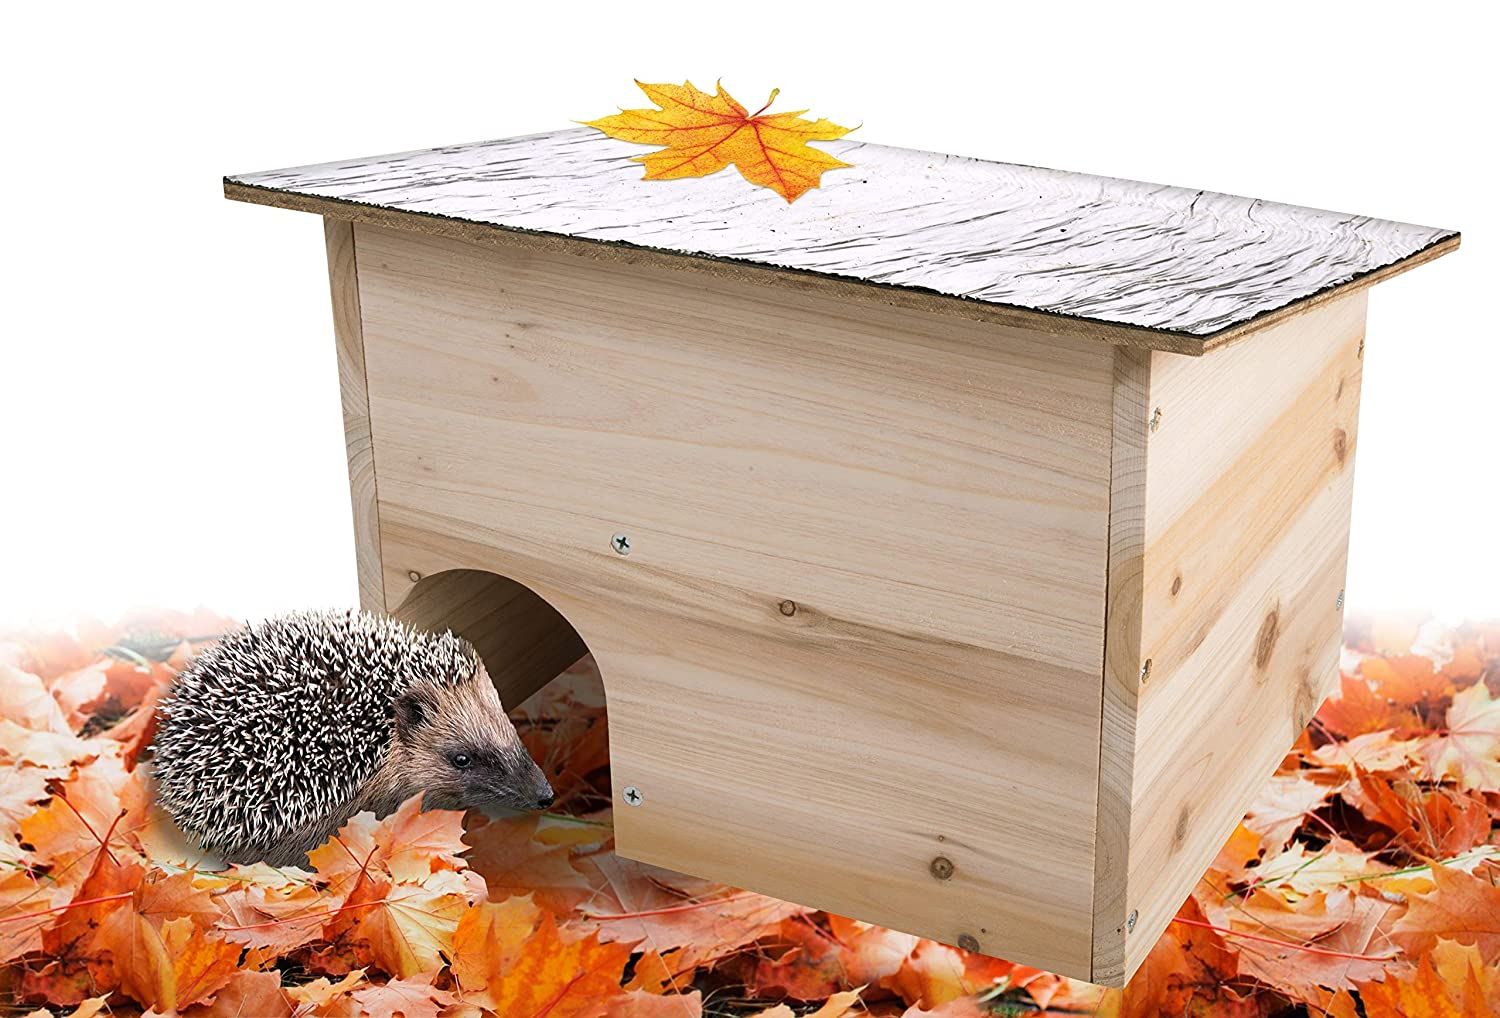 Gardigo 90568 - Hedgehog Home - Natural Wooden Hedgehog House & Hibernation Shelter